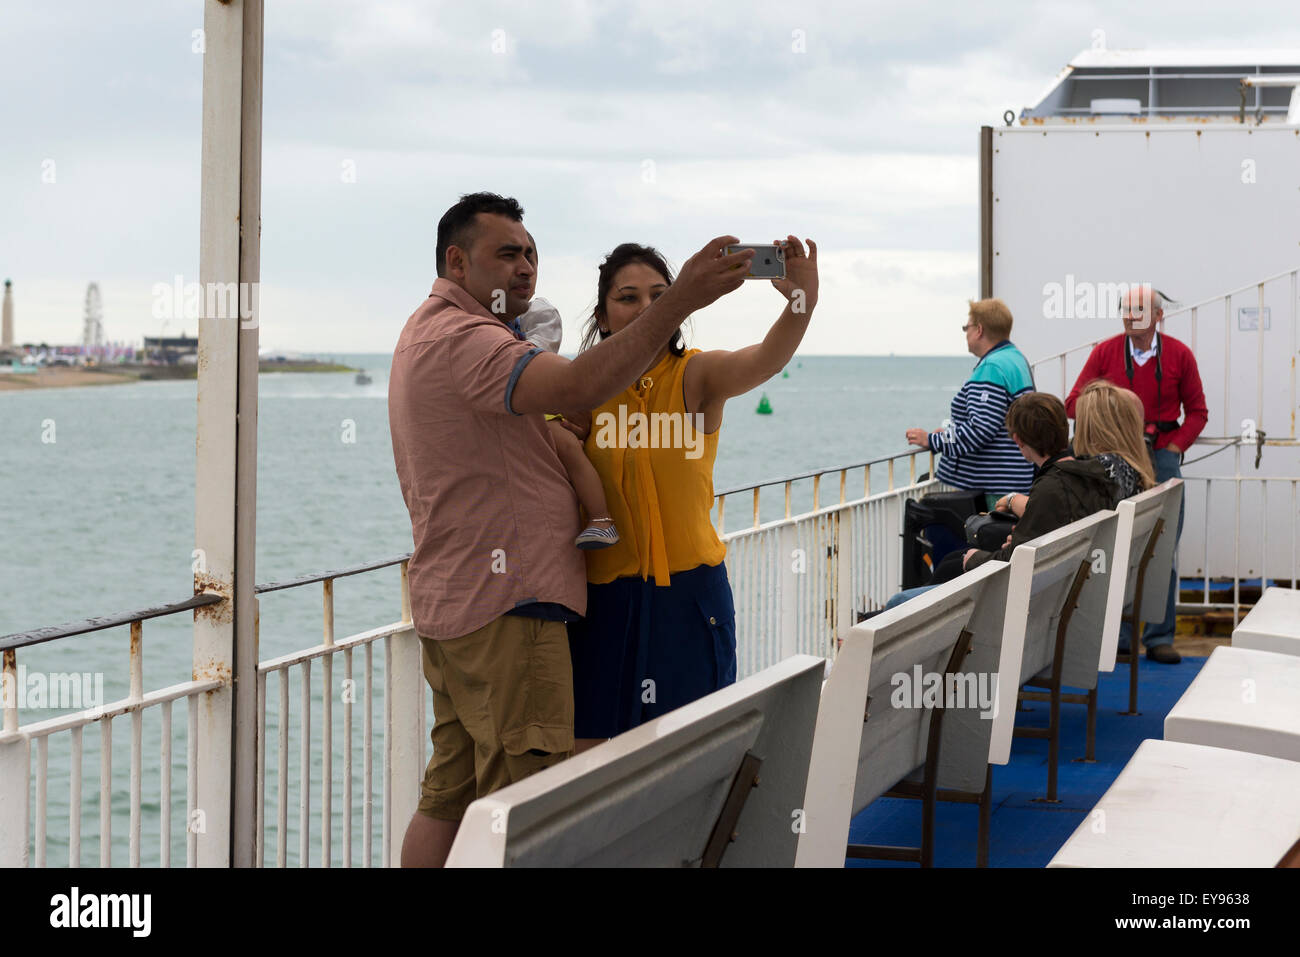 young to middle aged couple on ferry boat holding baby using a iphone to take a family selfie photograph - Stock Image